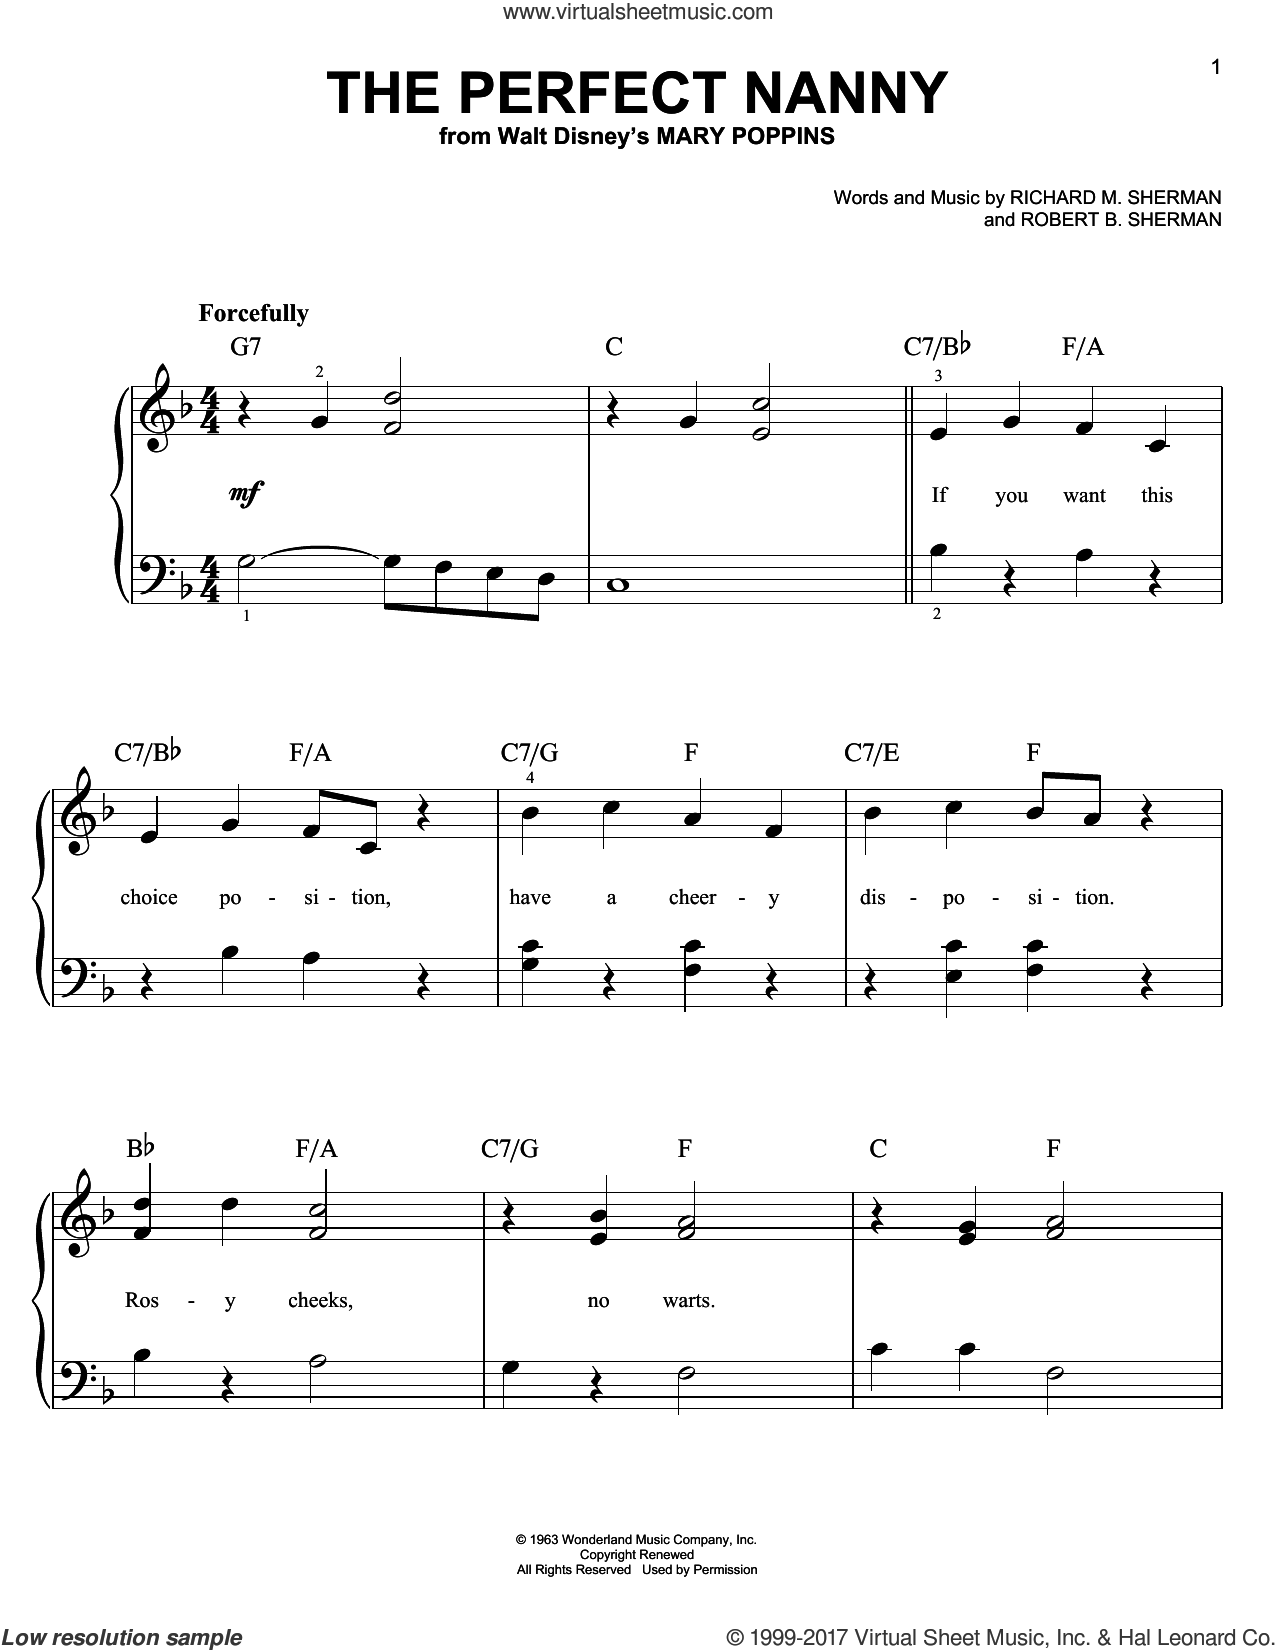 The Perfect Nanny sheet music for piano solo by Richard M. Sherman and Robert B. Sherman, easy piano. Score Image Preview.